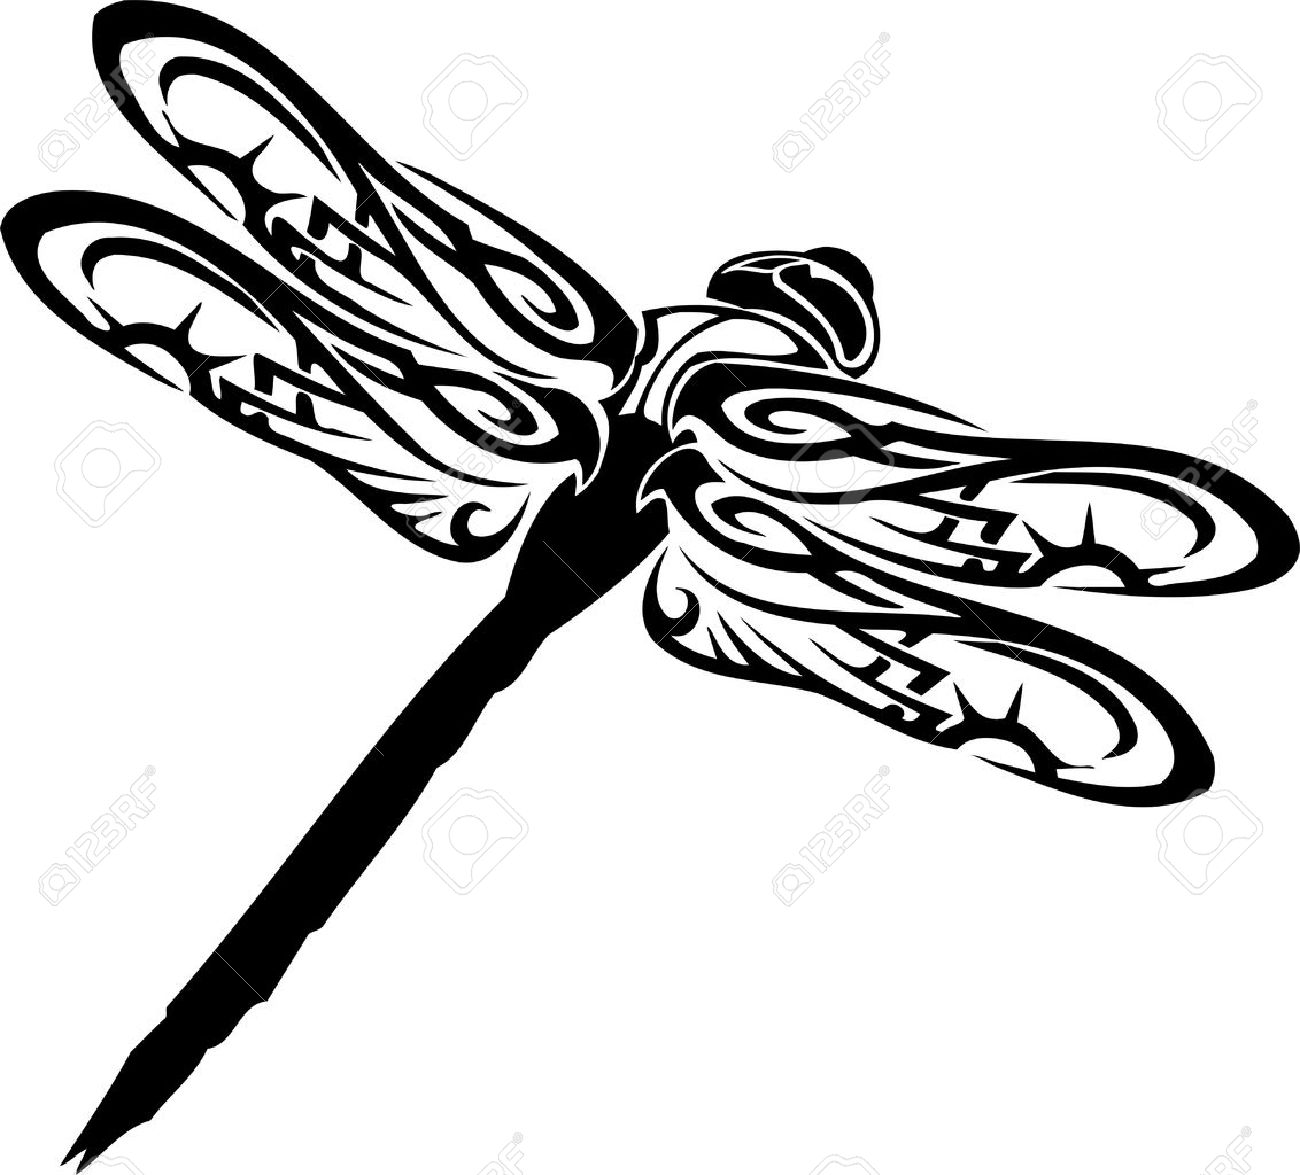 Dragonfly.Vector Illustration Ready For Vinyl Cutting. Royalty.